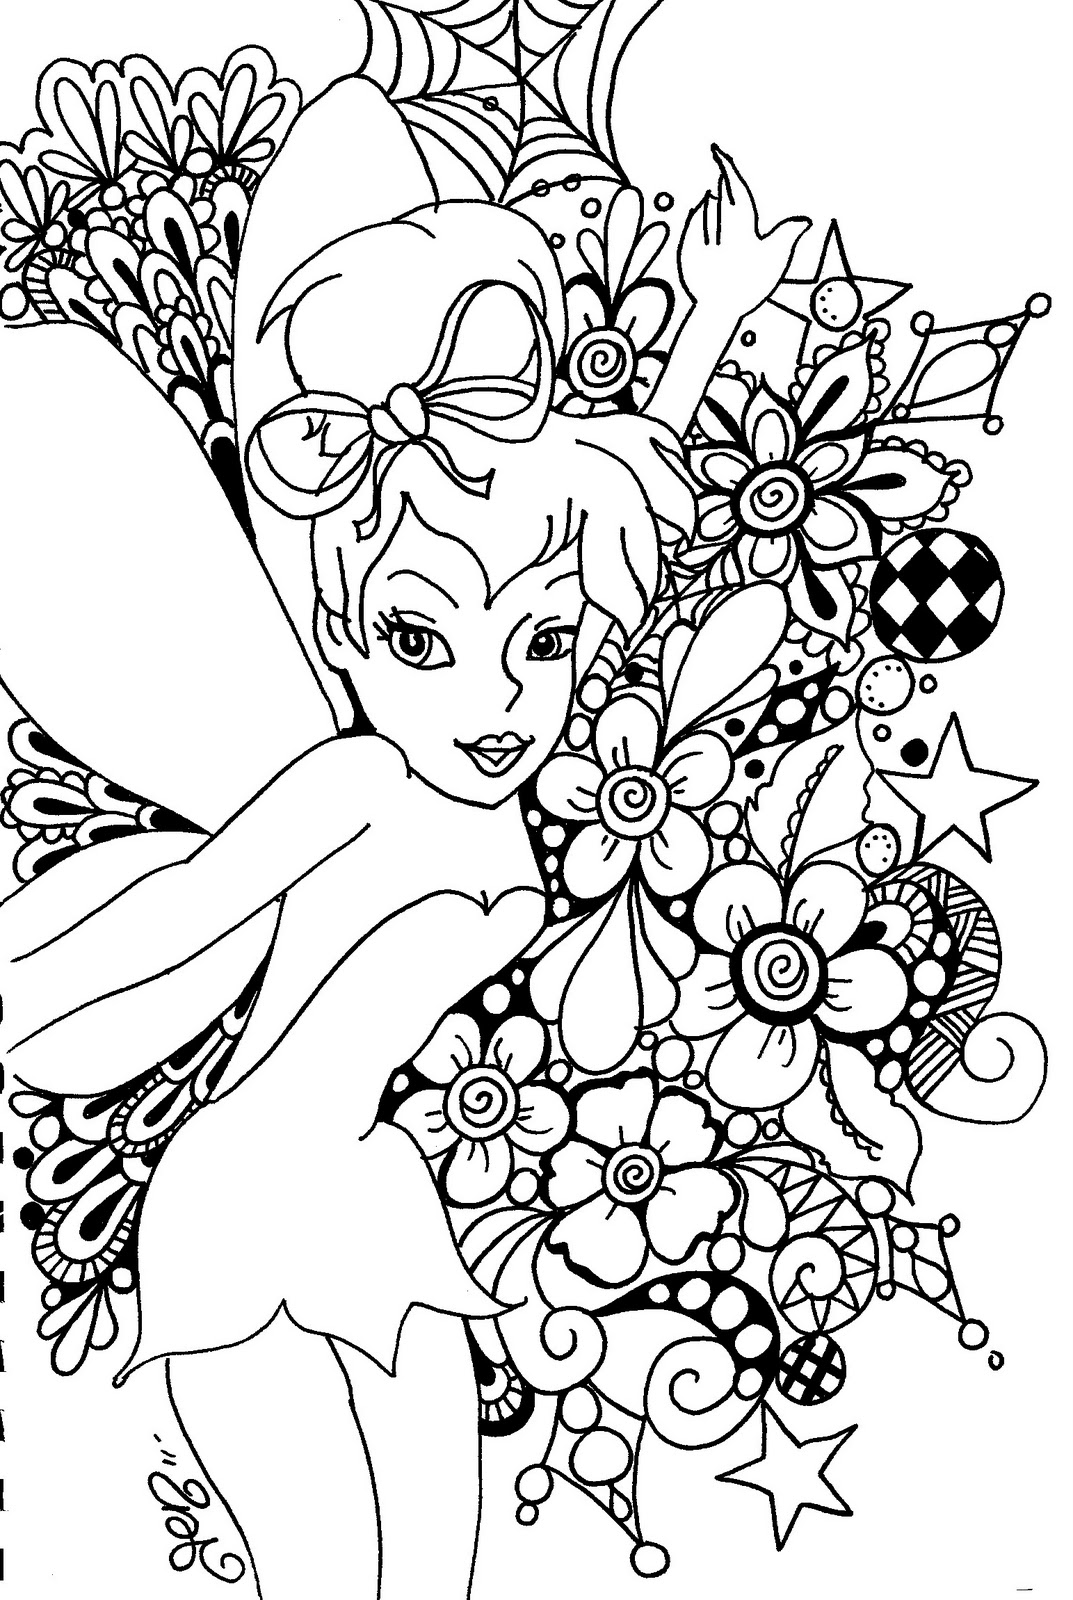 Free Tinkerbell Coloring Pages to Print